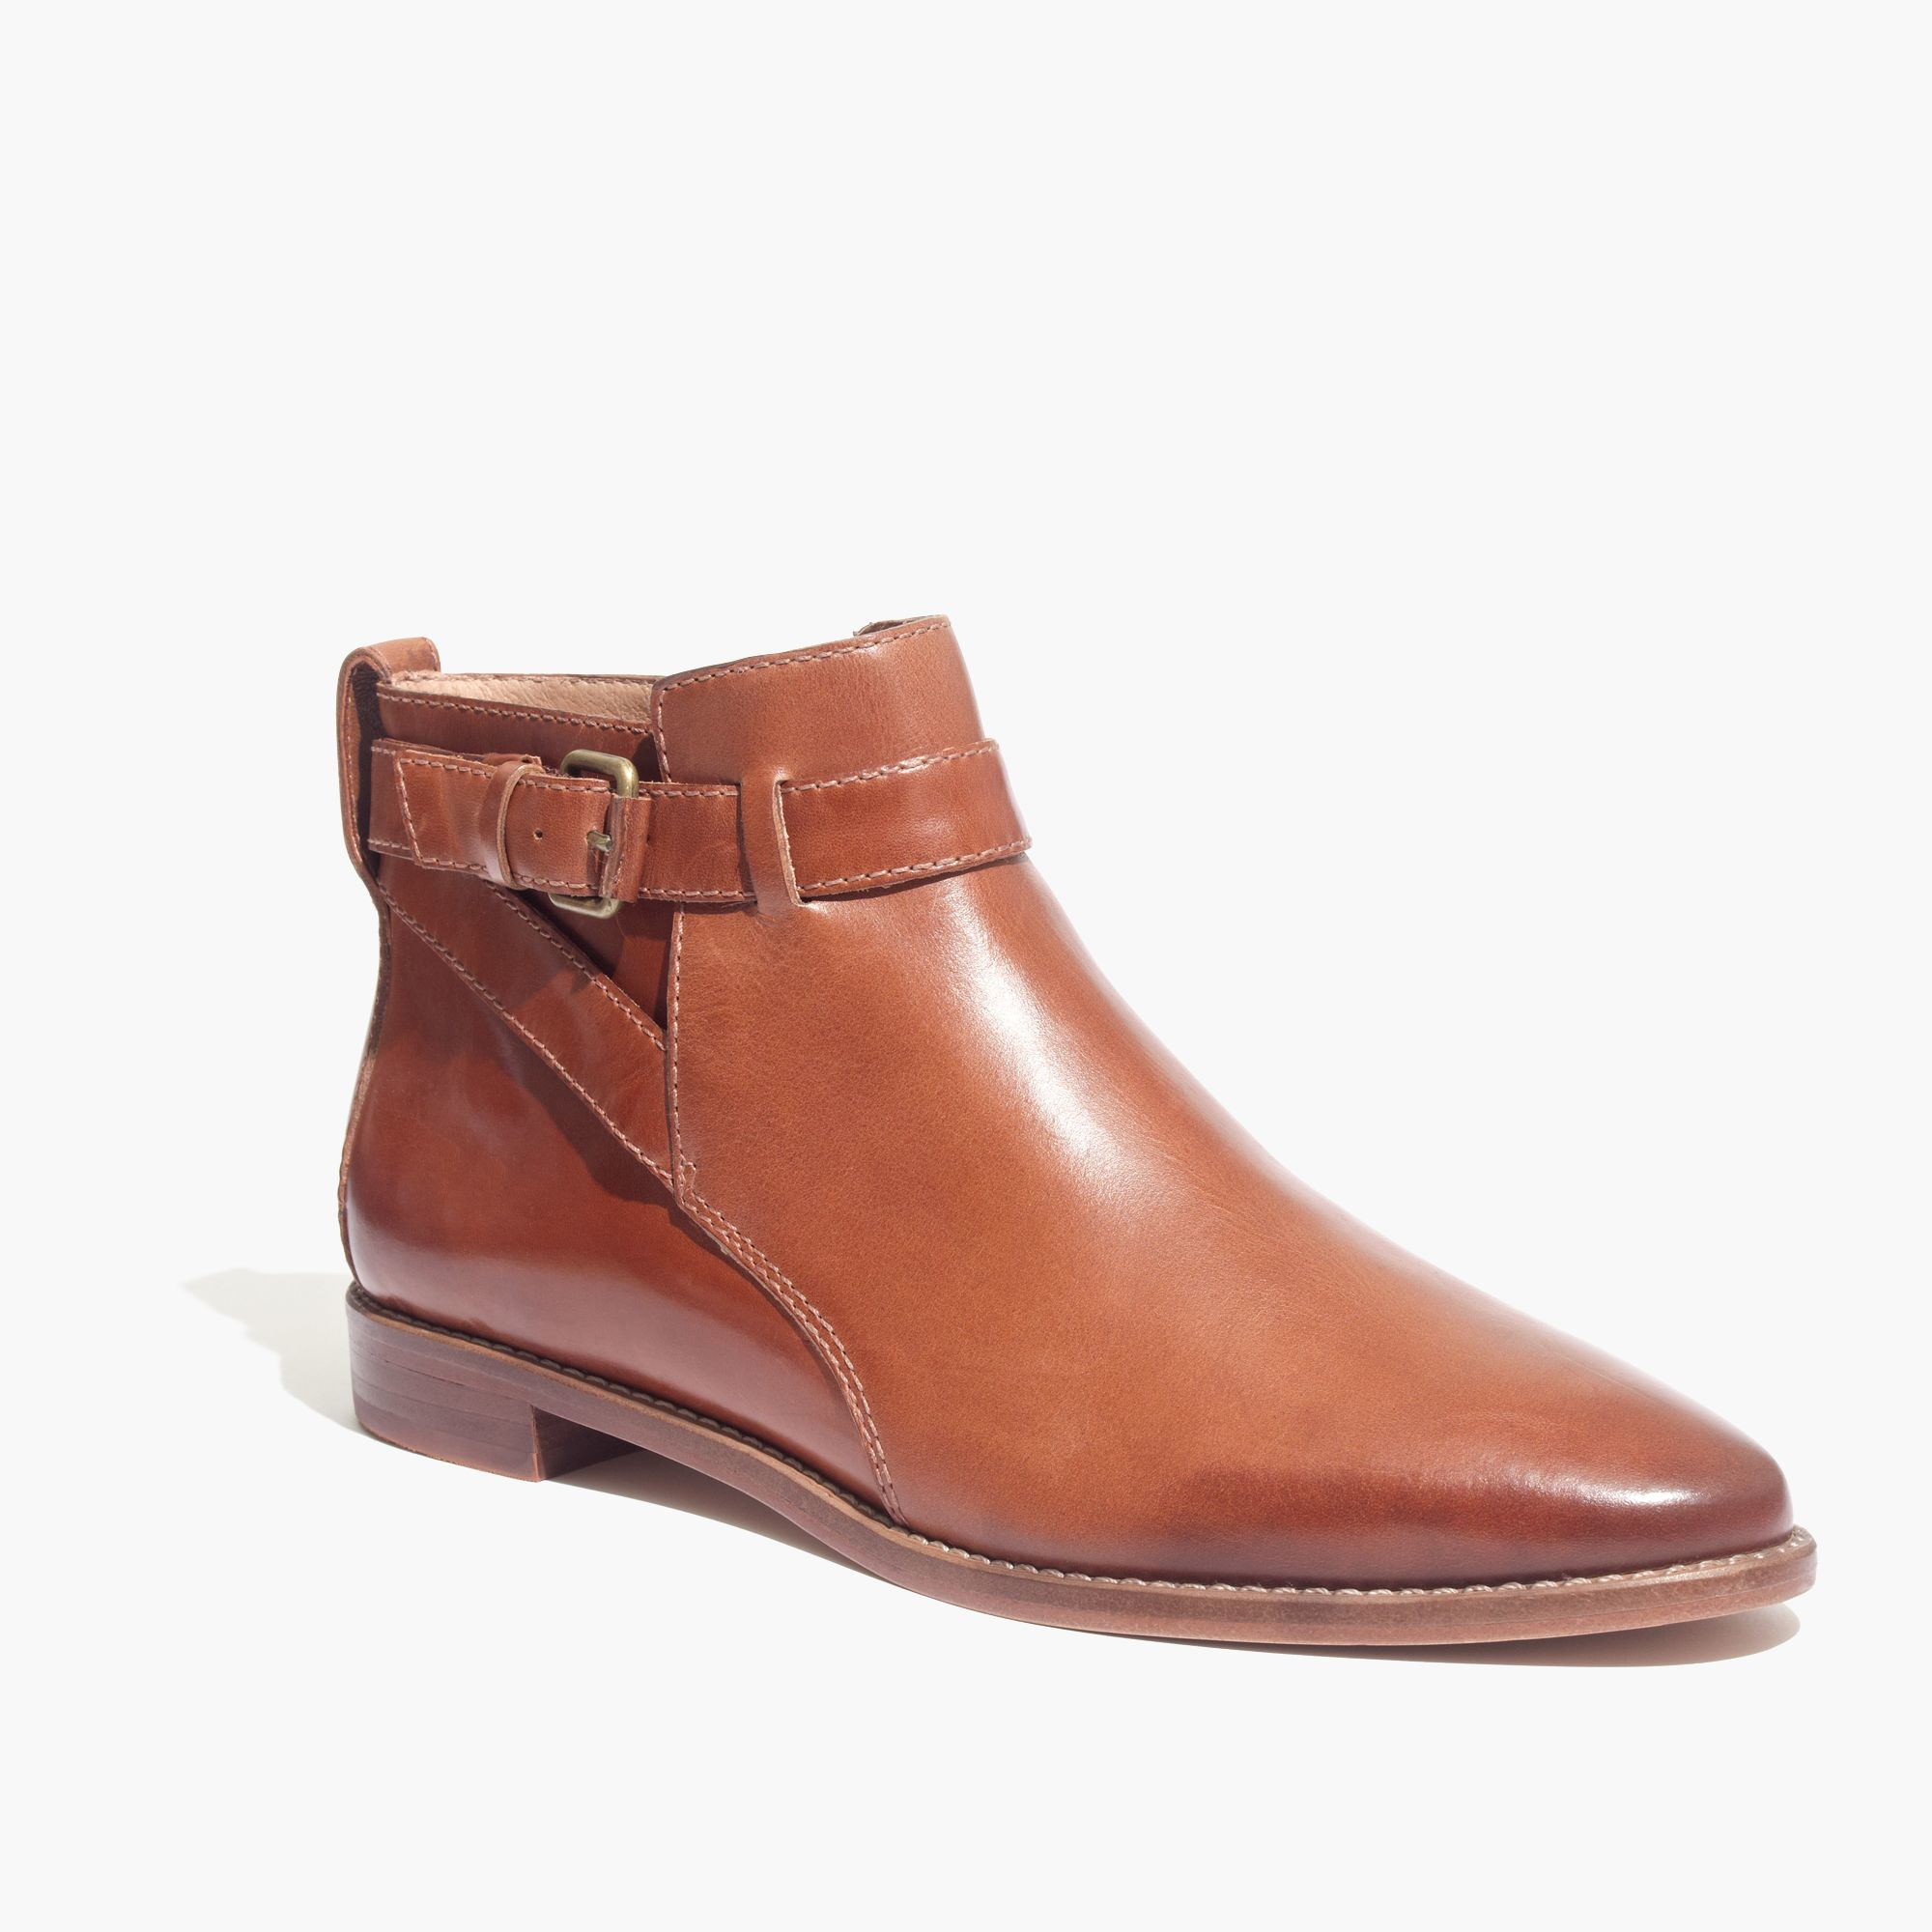 Madewell Leather The Hollis Boot